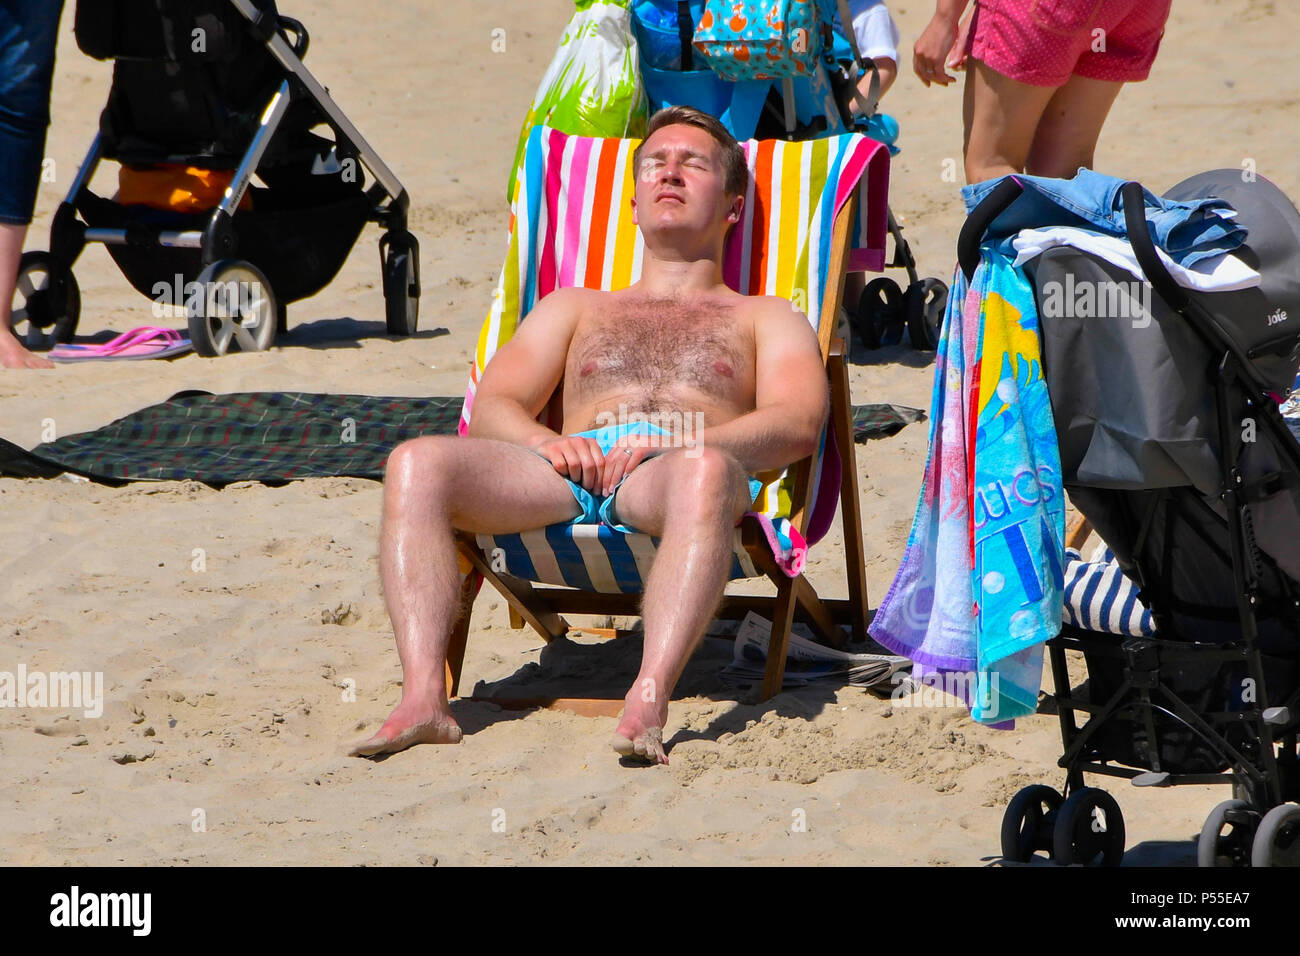 Lyme Regis, Dorset, UK.  25th June 2018. UK Weather.  A sunbather on the beach at the seaside resort of Lyme Regis in Dorset enjoying the hot sunshine and clear blue skies.  Picture Credit: Graham Hunt/Alamy Live News Stock Photo